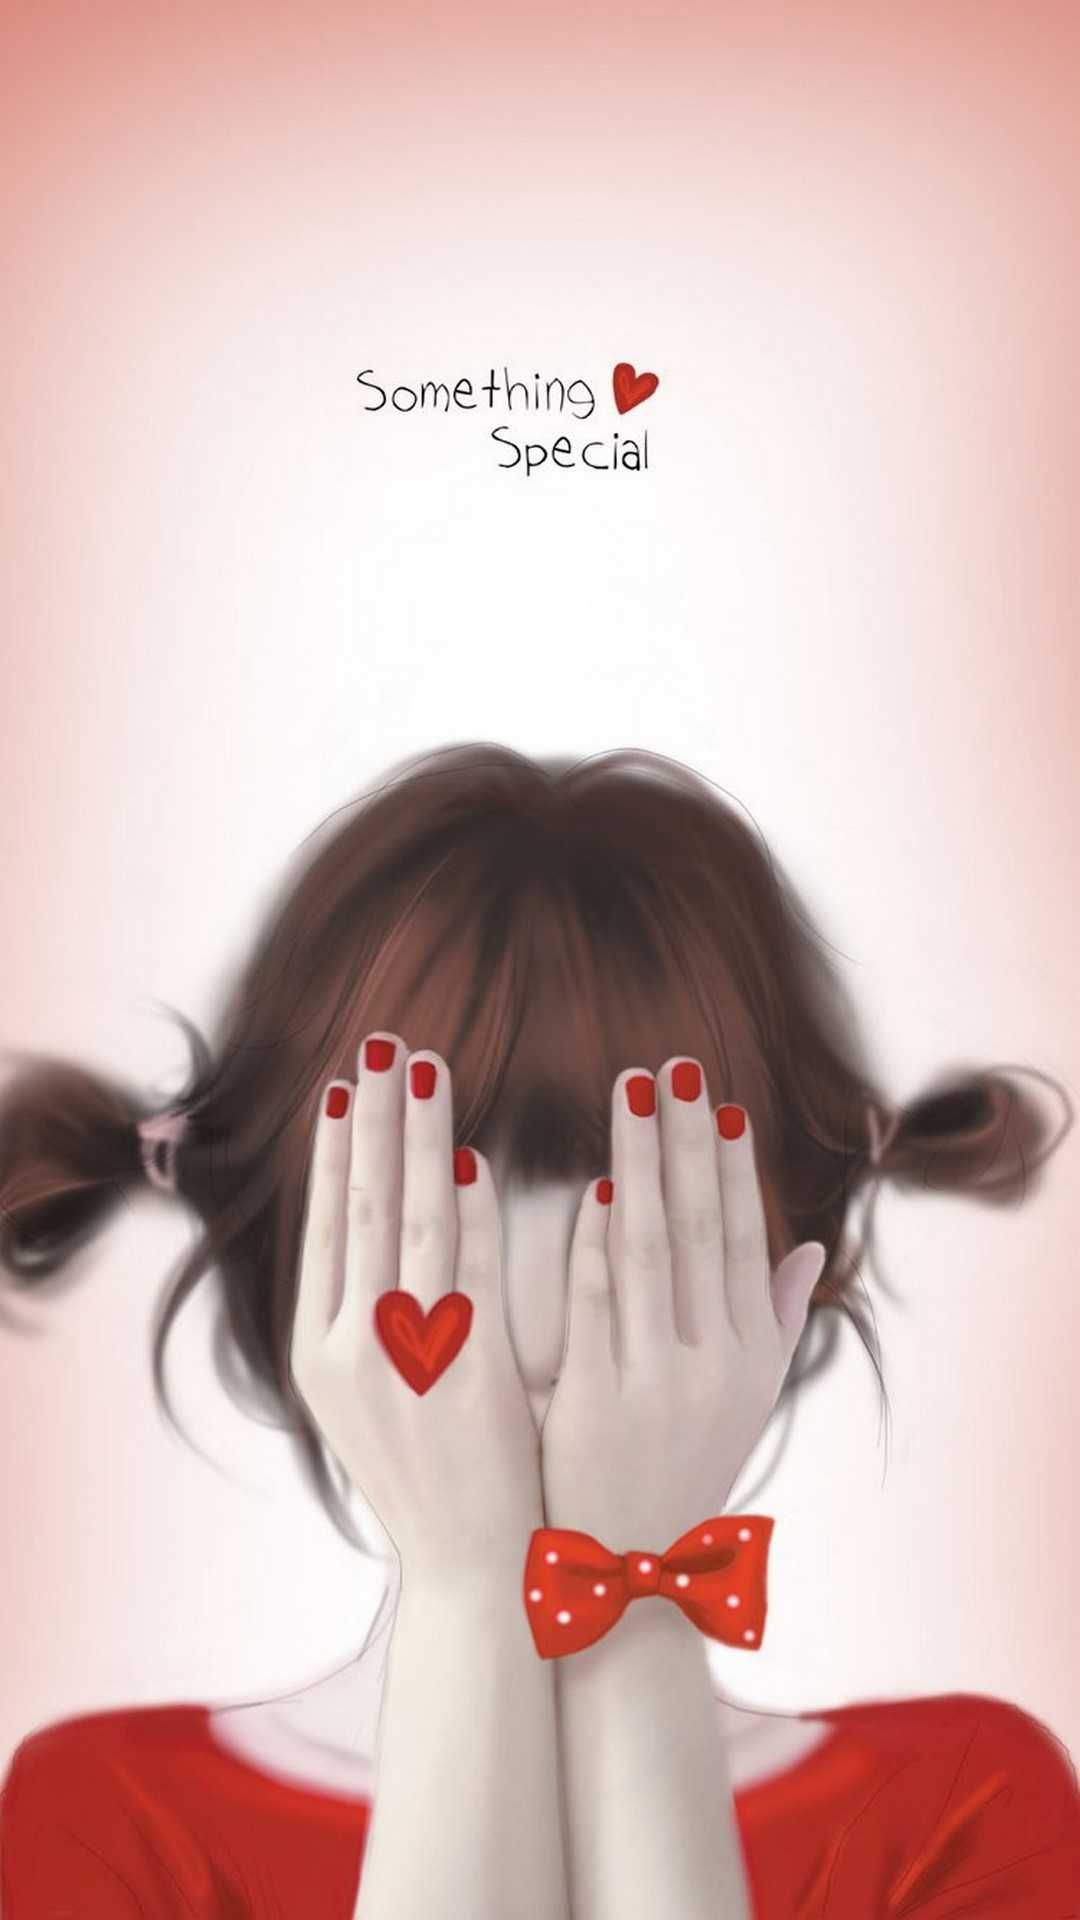 Cute girly wallpapers top free cute girly backgrounds - Cute wallpapers for a laptop ...